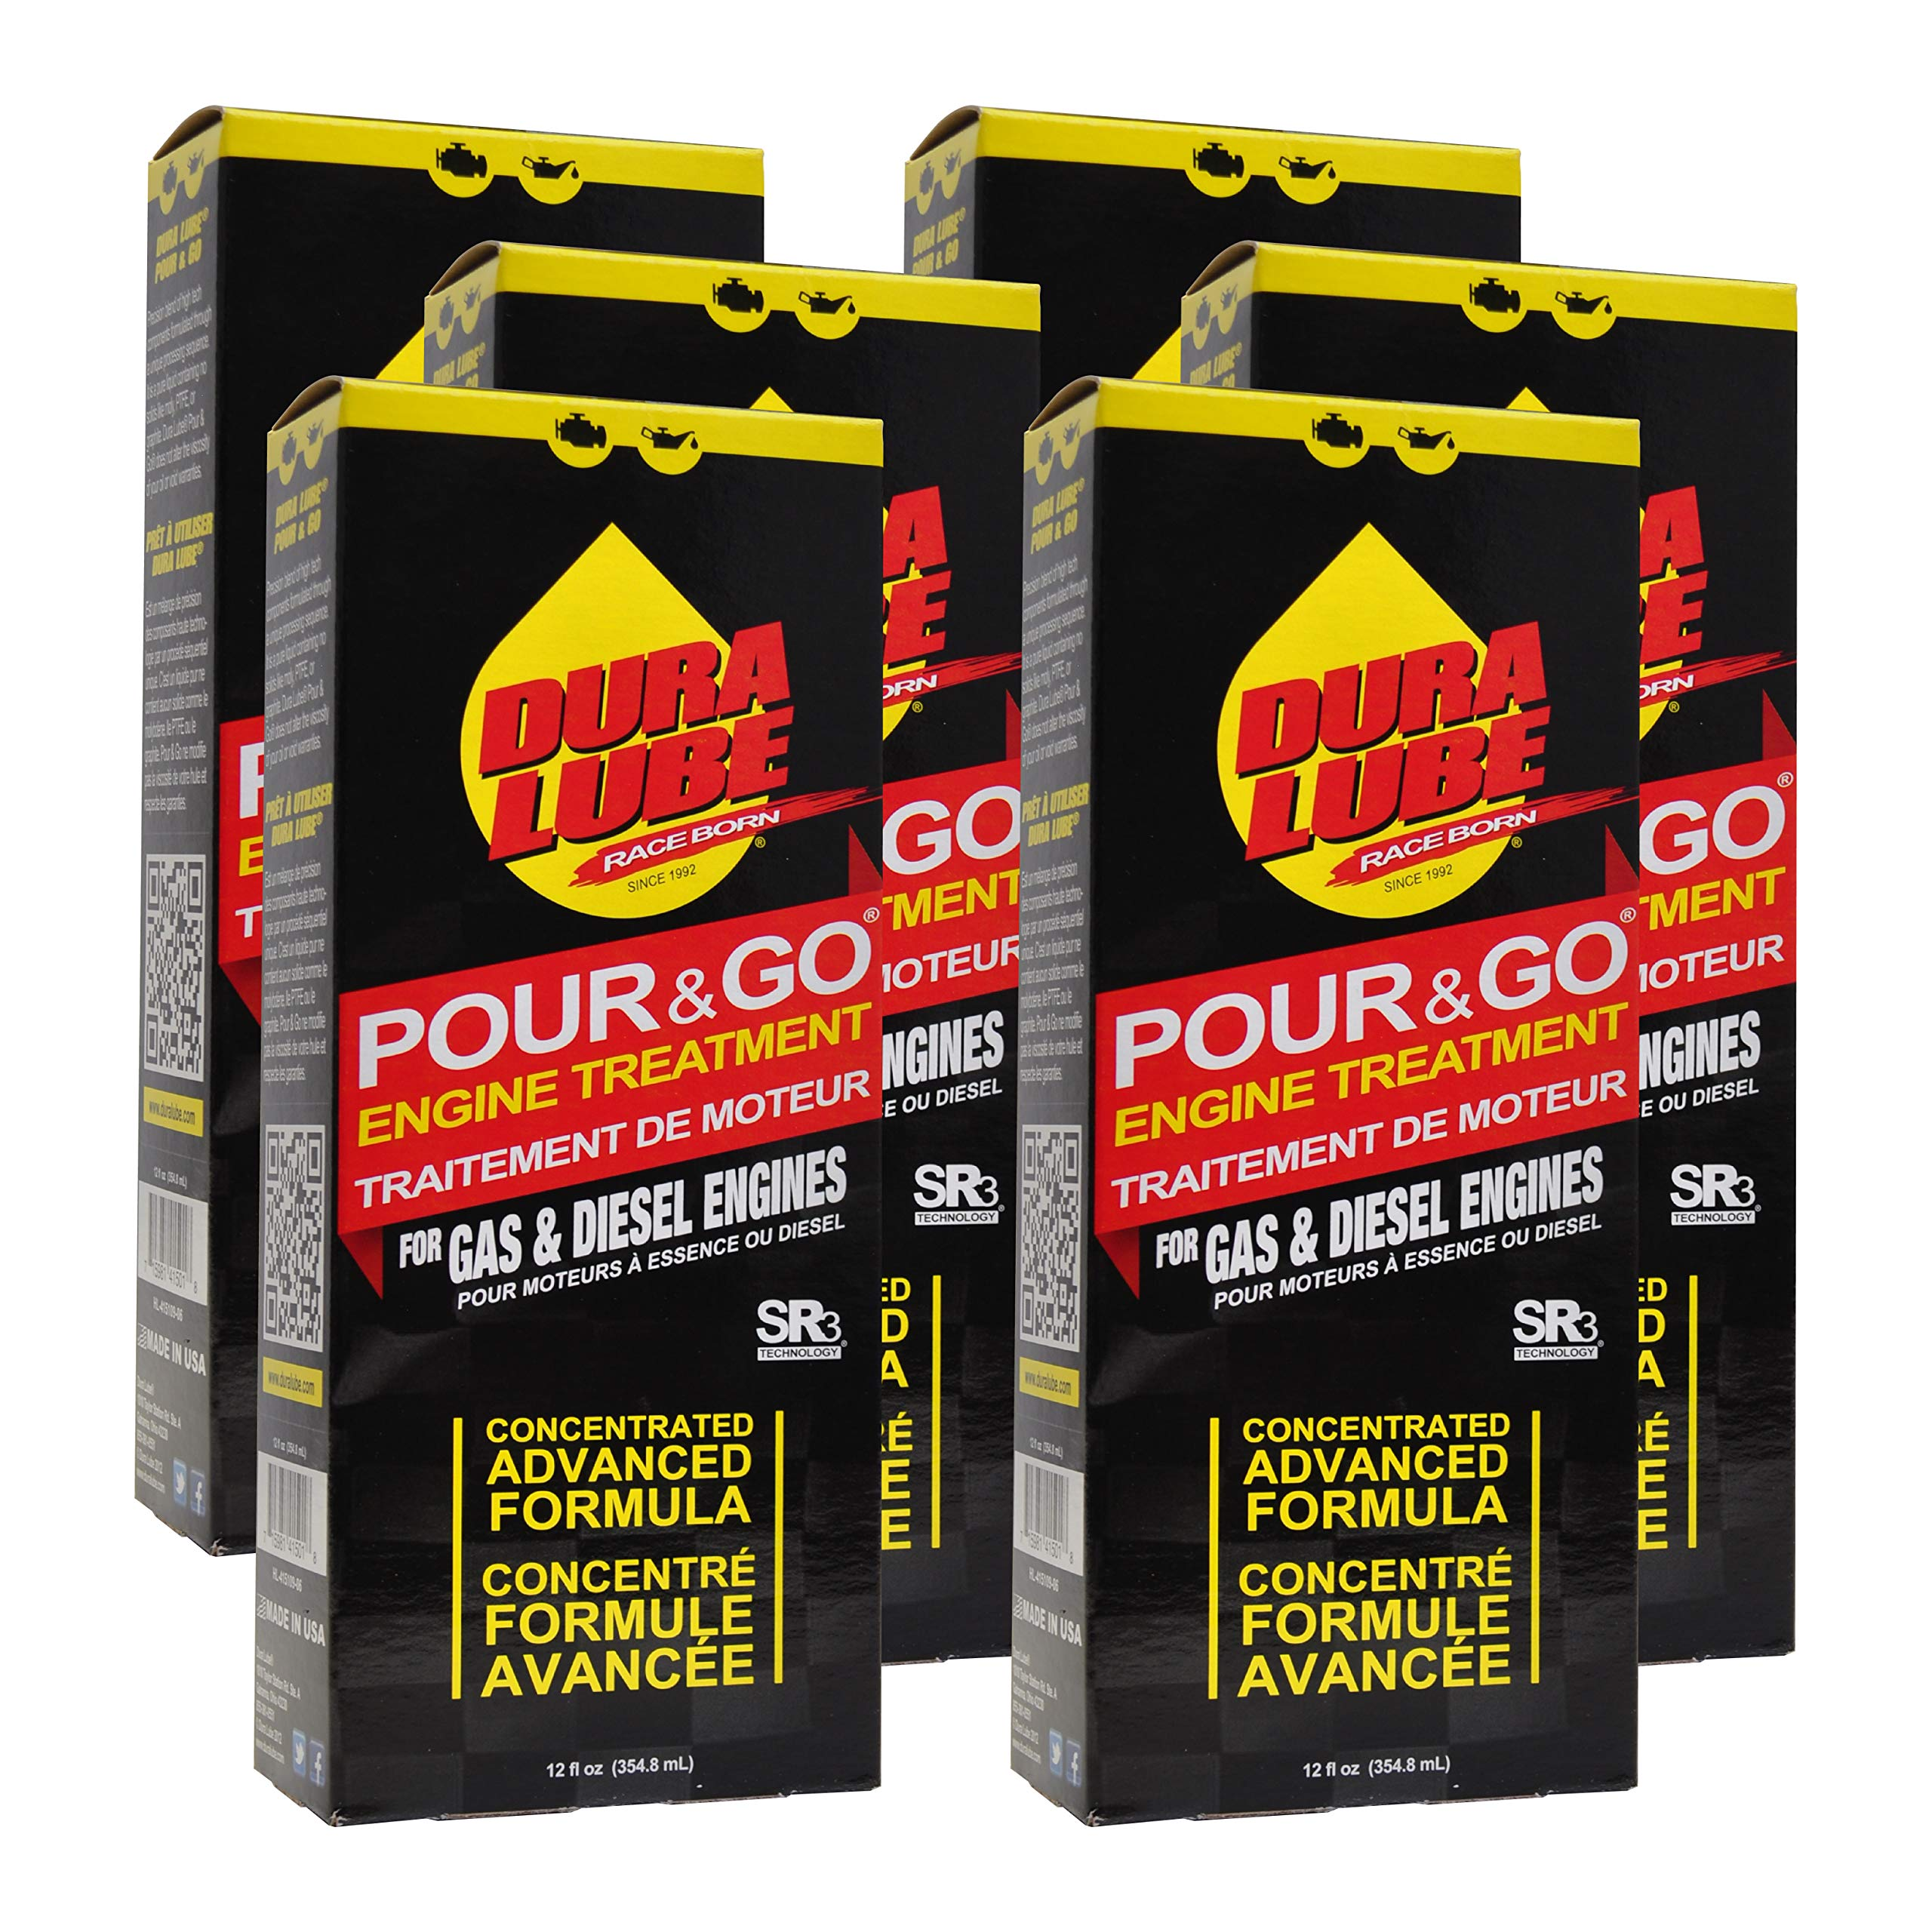 DURA LUBE HL-41501-06-6PK Pour & Go Engine Treament, 12-Ounce, 6-Pack by DURA LUBE